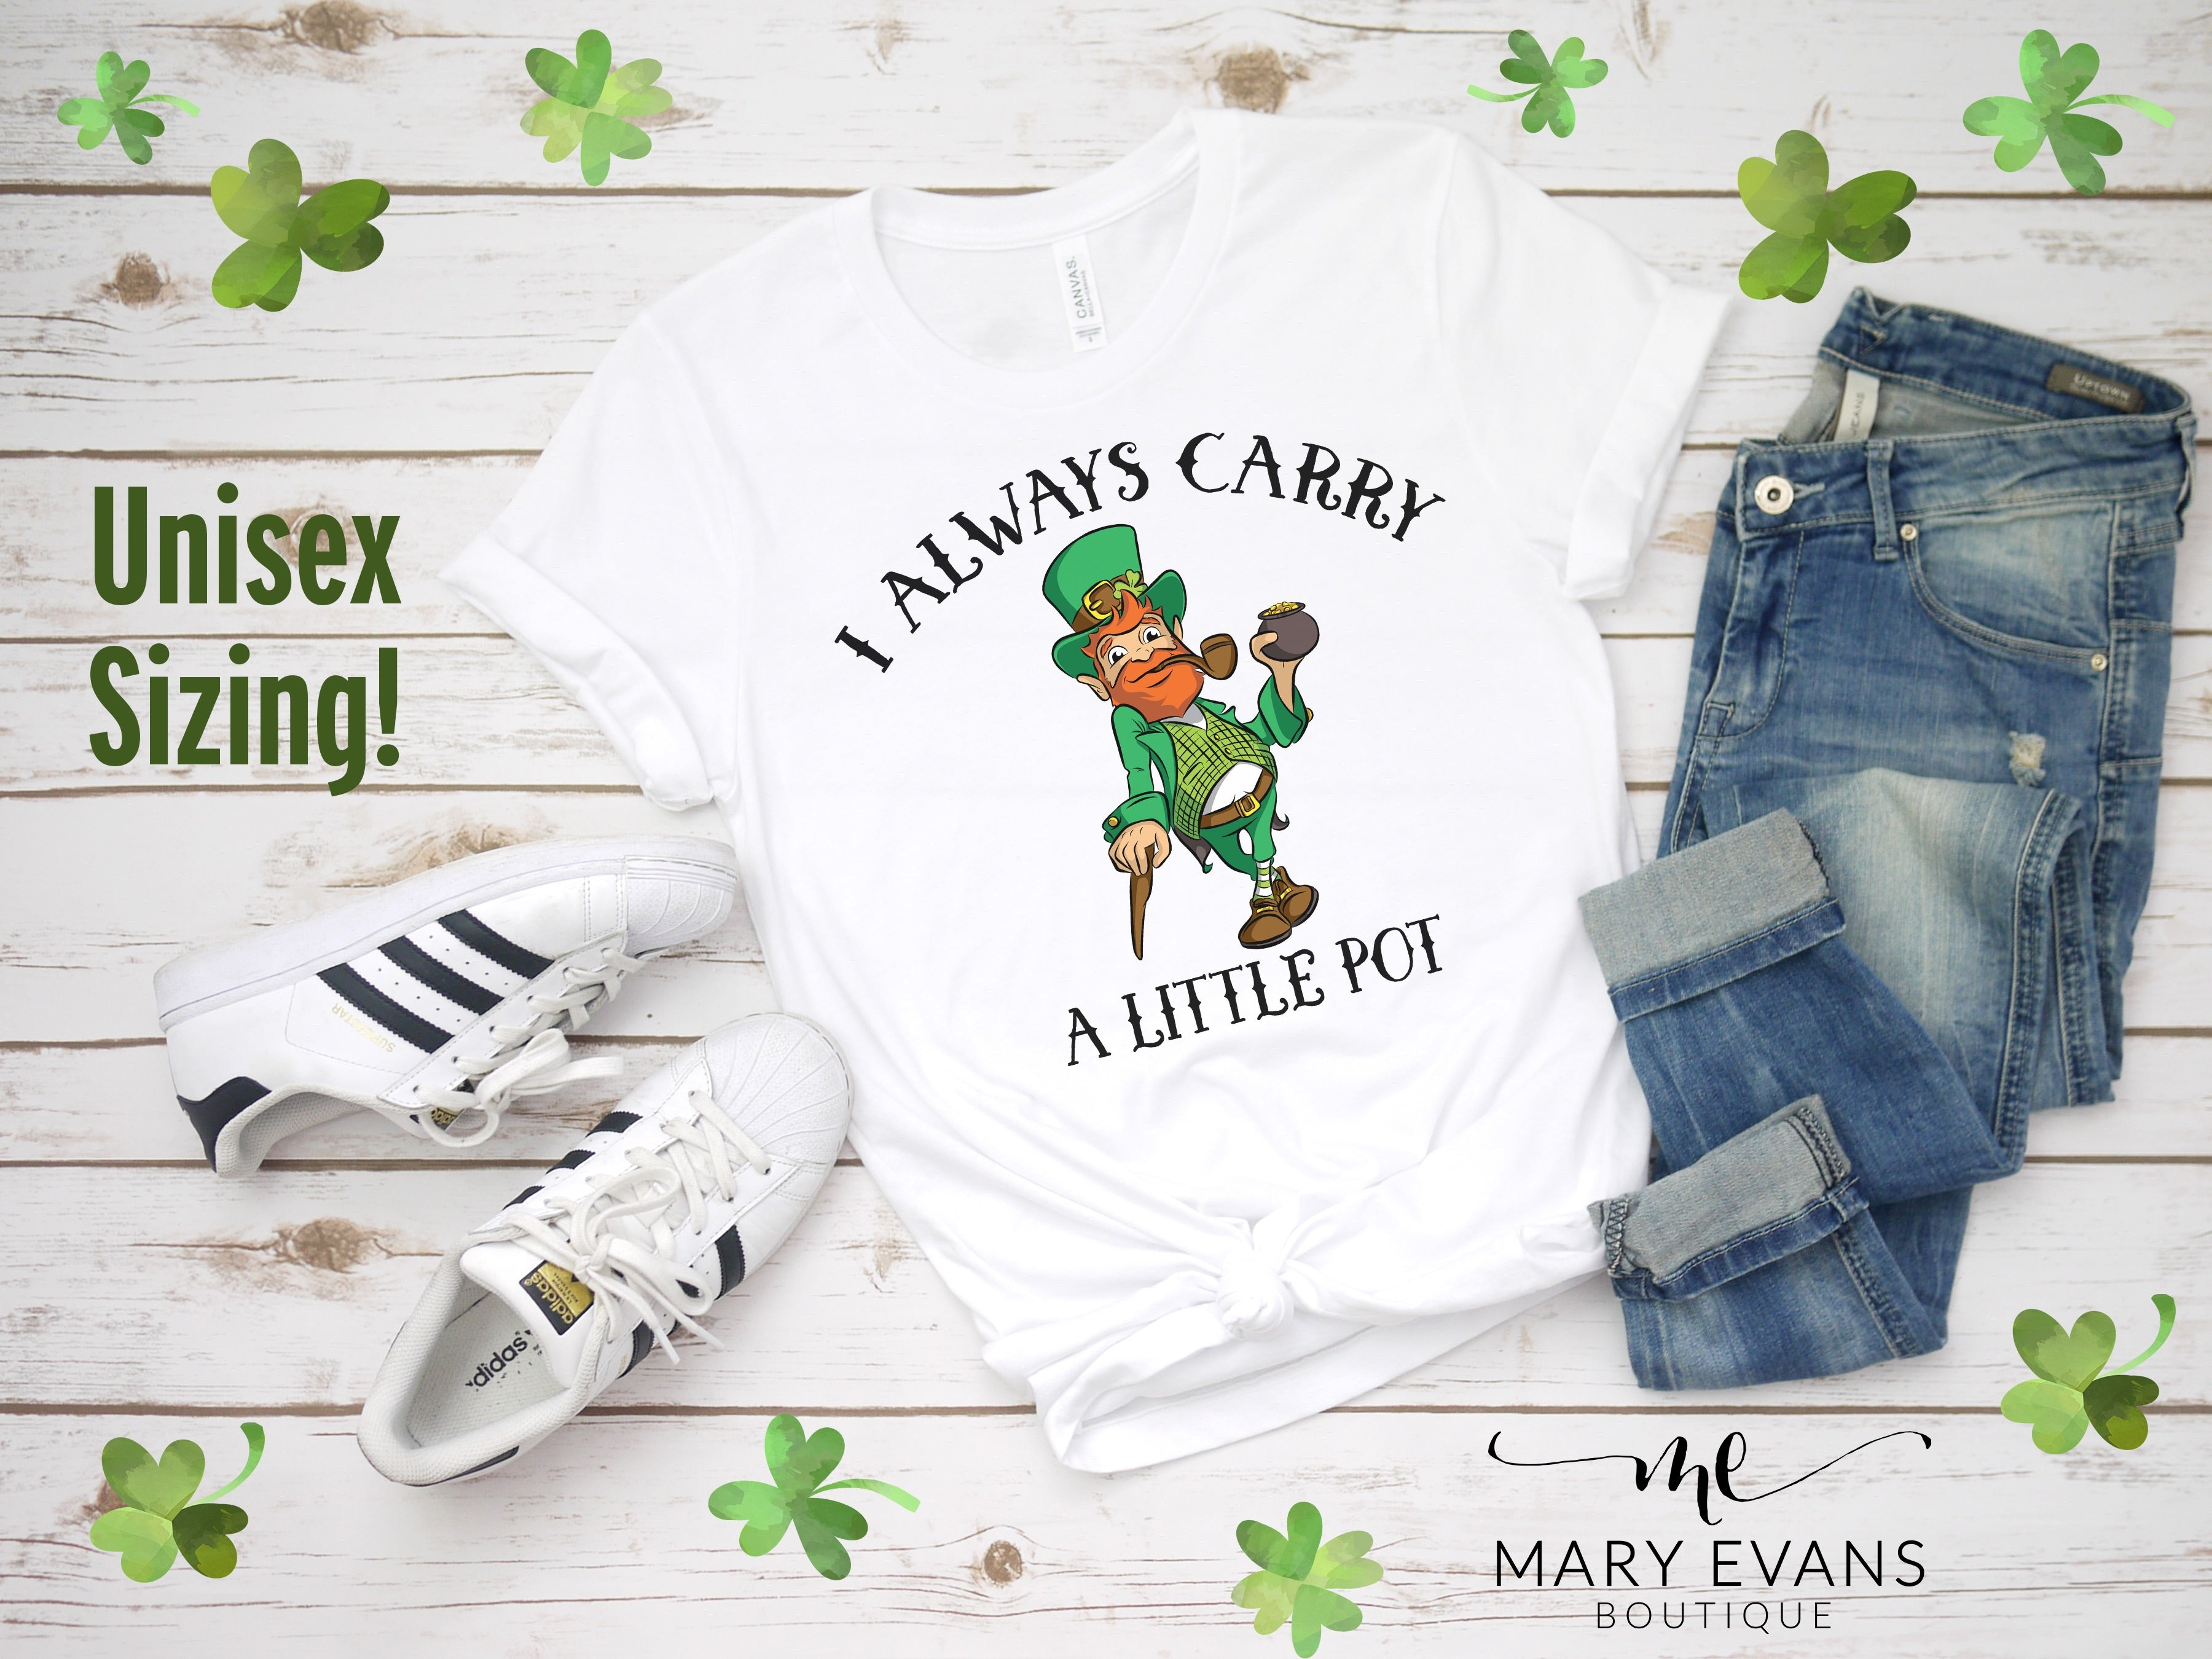 I Always Carry a Little Pot - Funny St Pattys Day Shirt